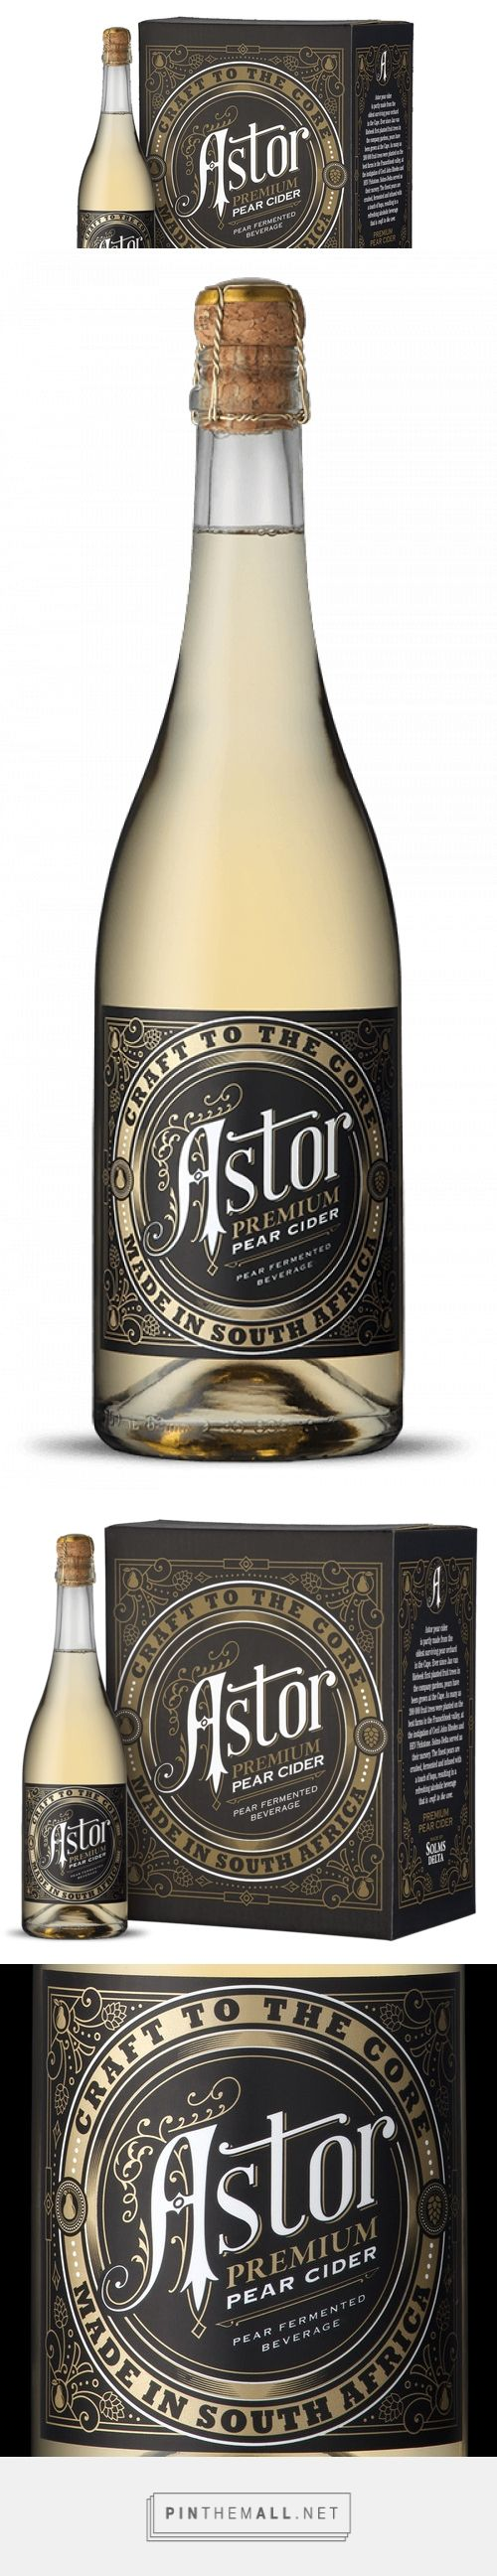 Pin by Stone Brewing on Inspiring Design + Lovely